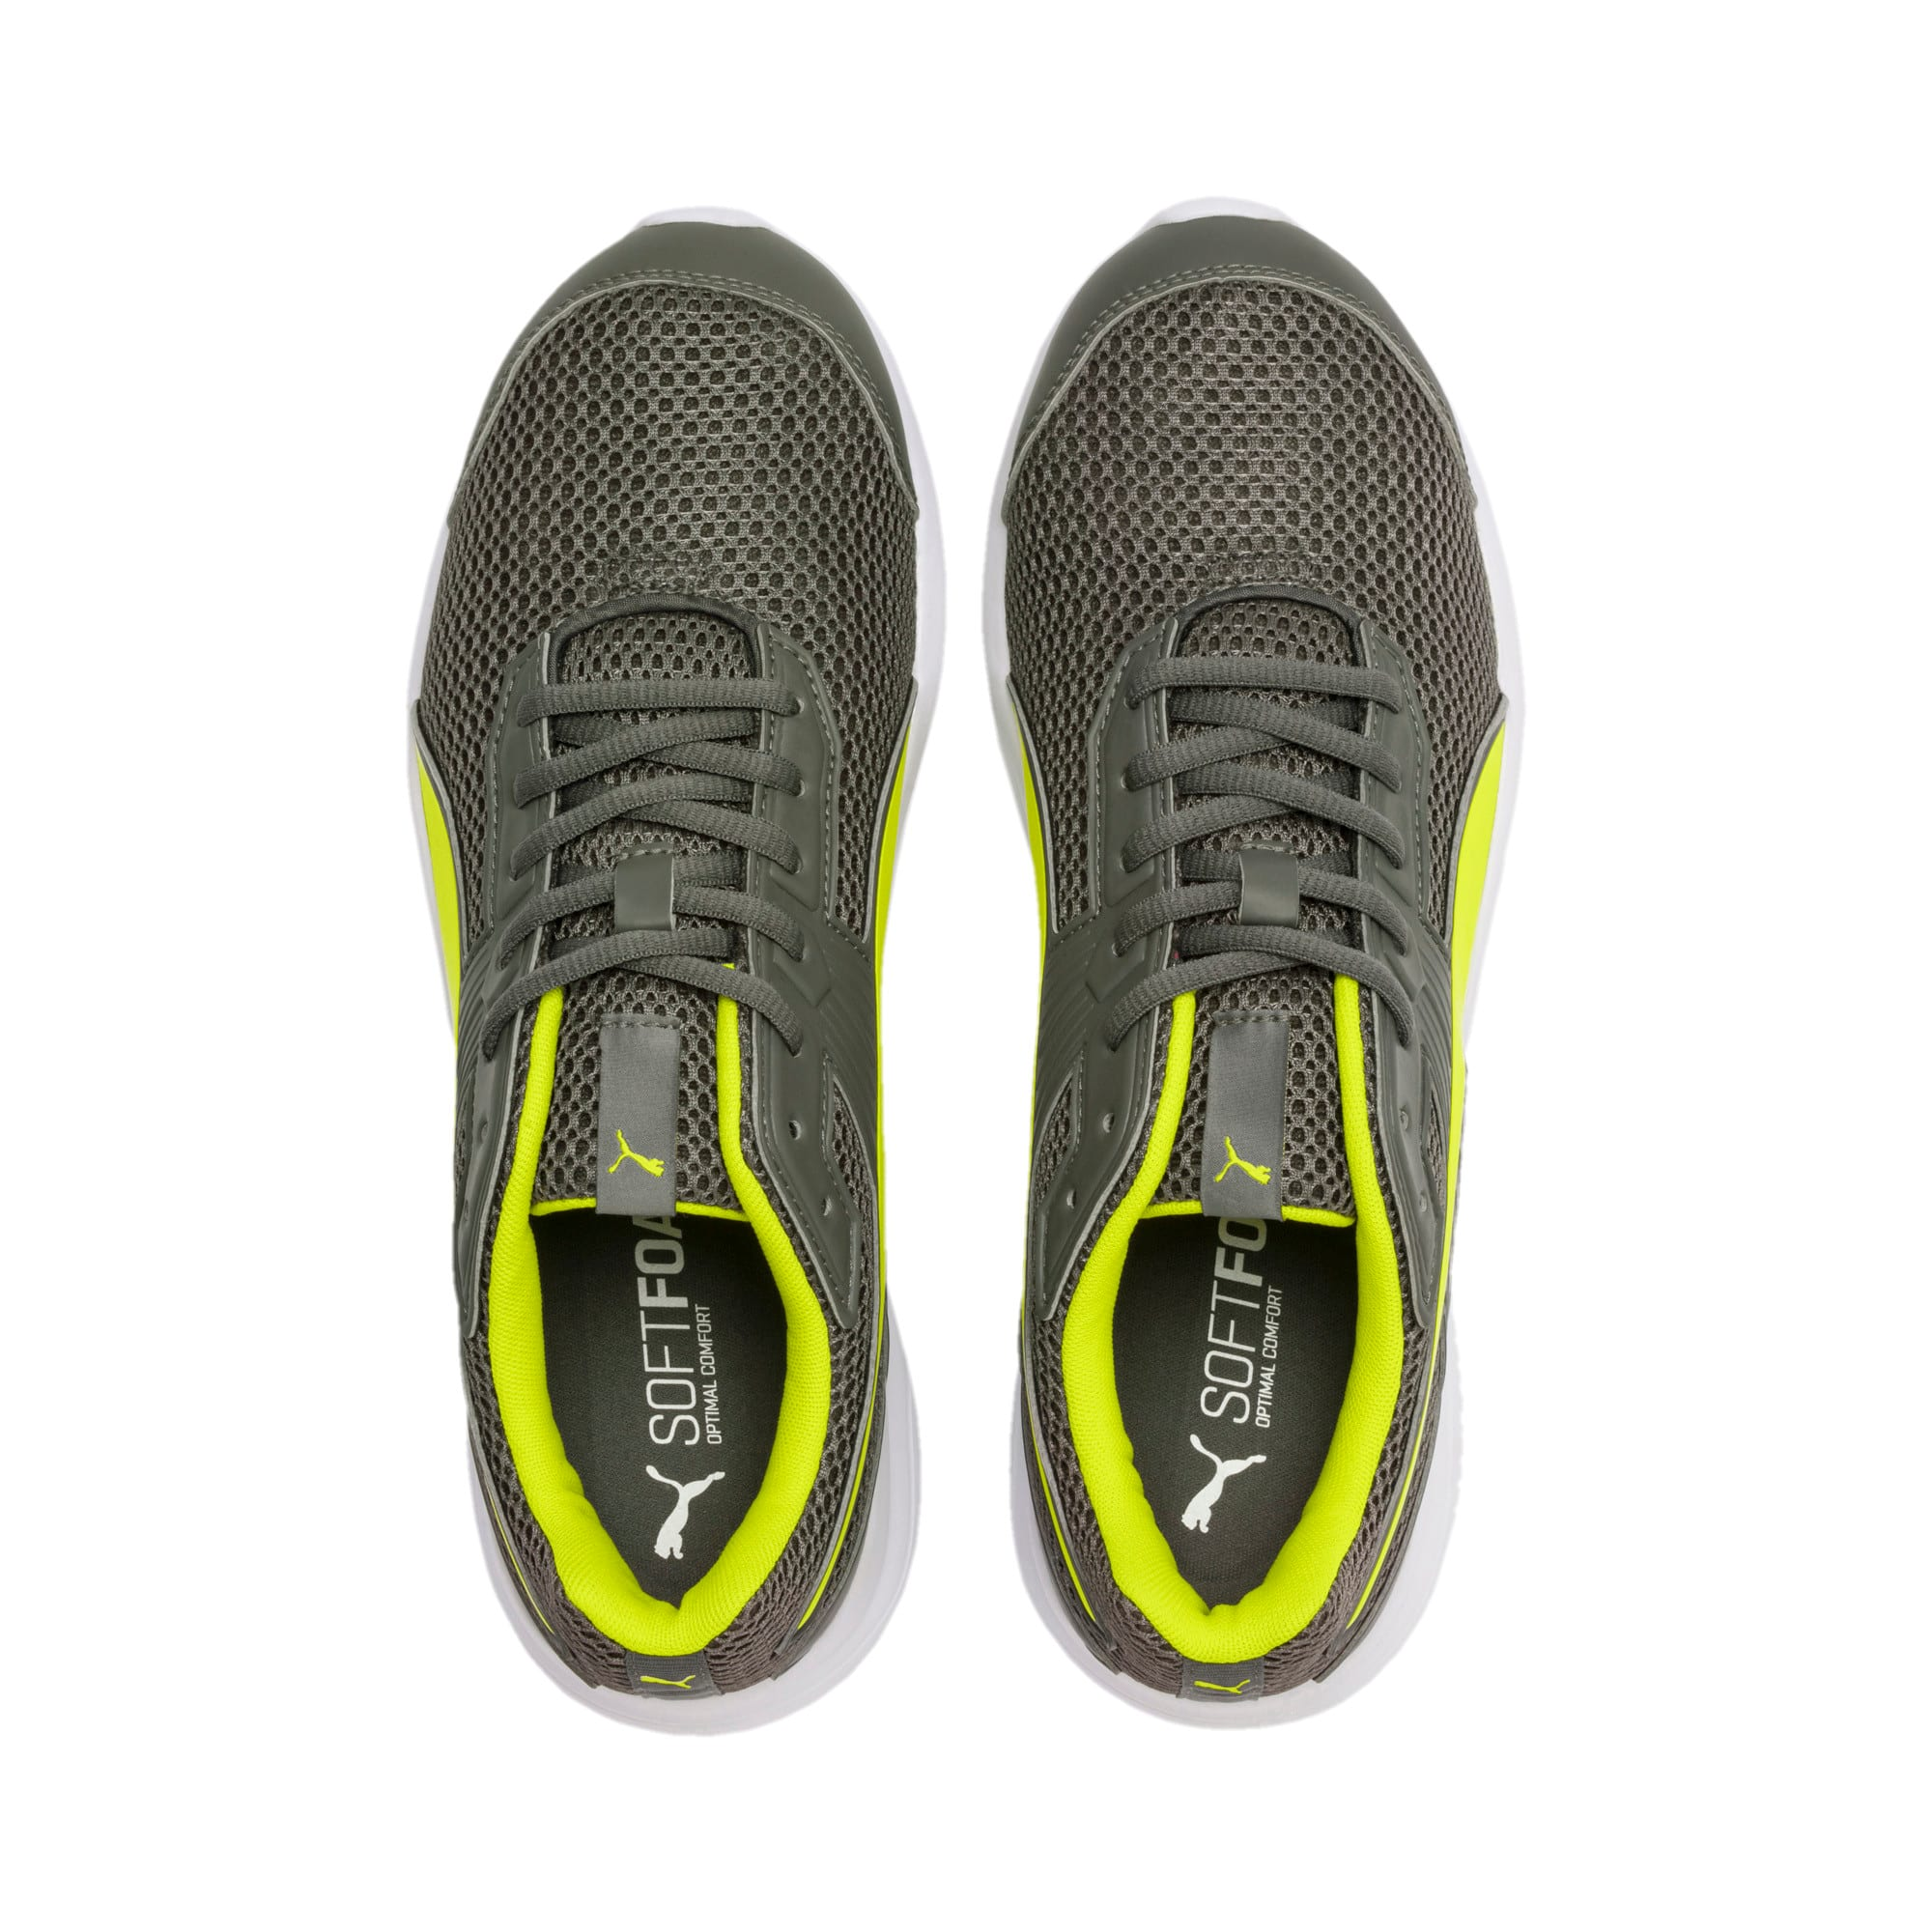 Thumbnail 6 of Escaper Training Shoes, CASTLEROCK-Nrgy Yellow-White, medium-IND